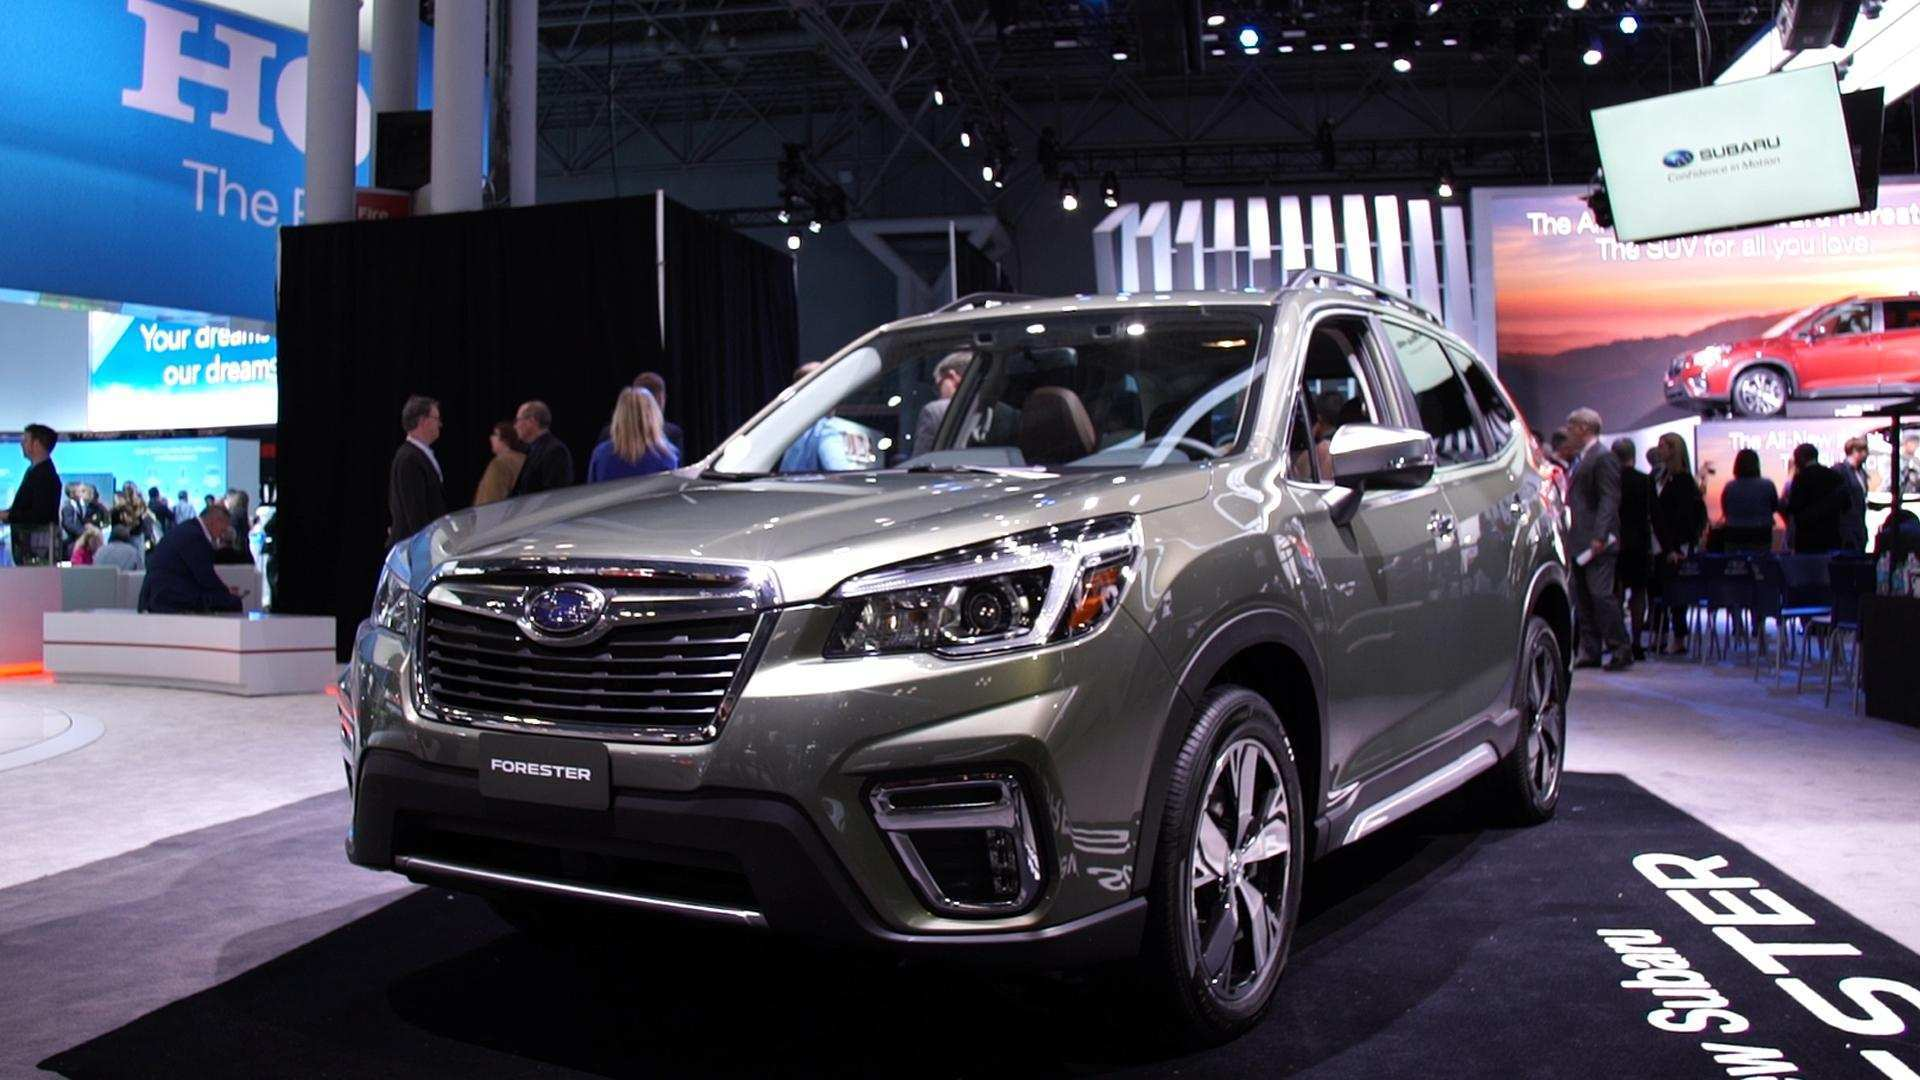 53 Concept of The Release Date Of Subaru 2019 Forester Picture Release Date And Review Release by The Release Date Of Subaru 2019 Forester Picture Release Date And Review